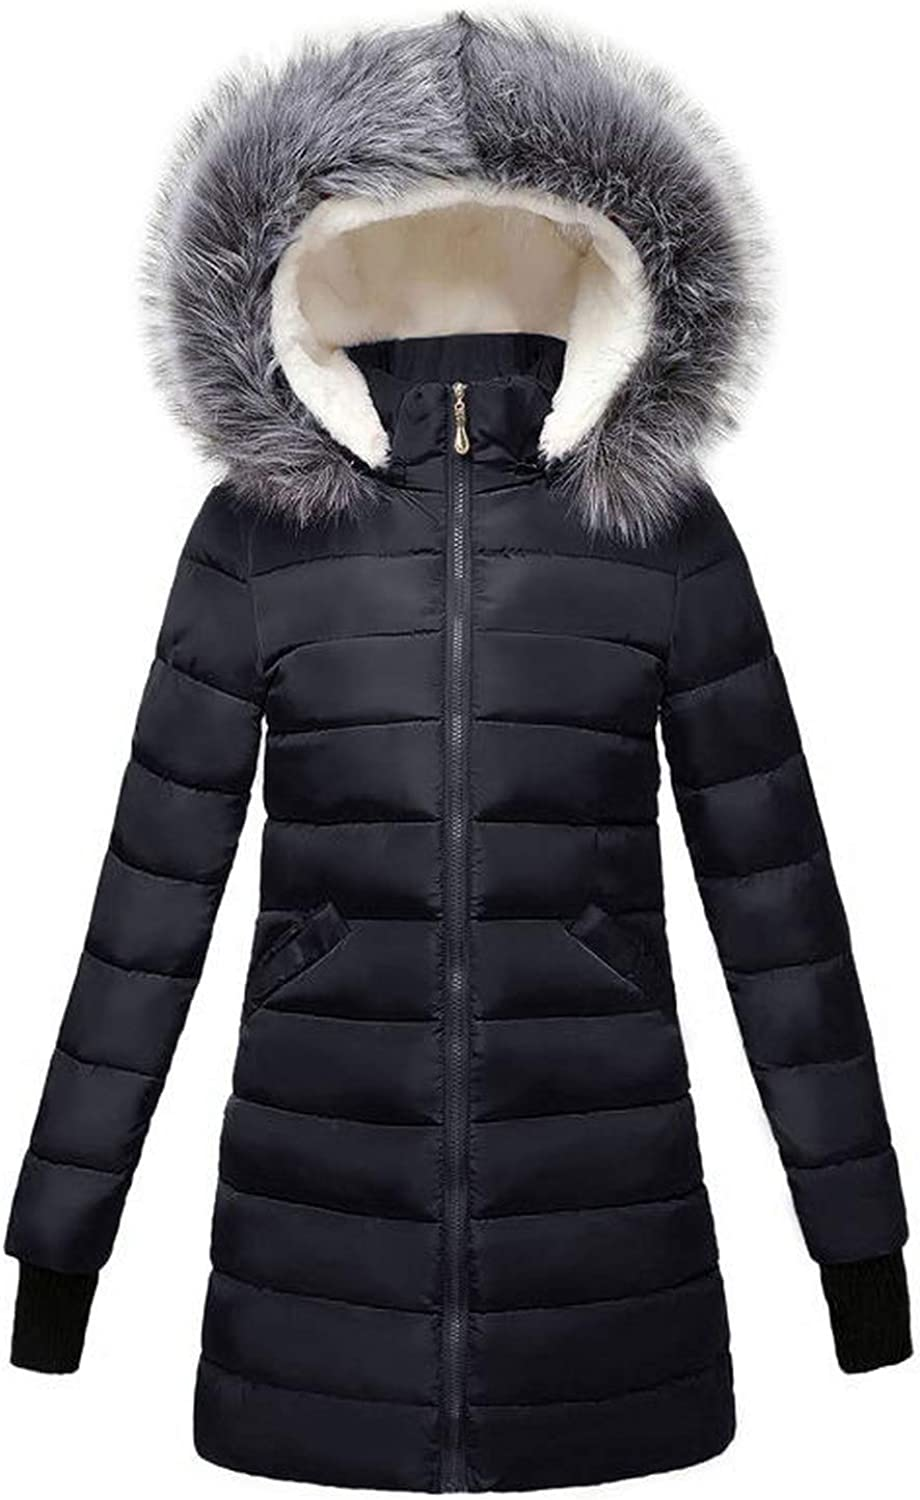 Winter Jacket Fashion Women Parkas Snow Wear Hooded Thicken Winter Coat Warm Clothing